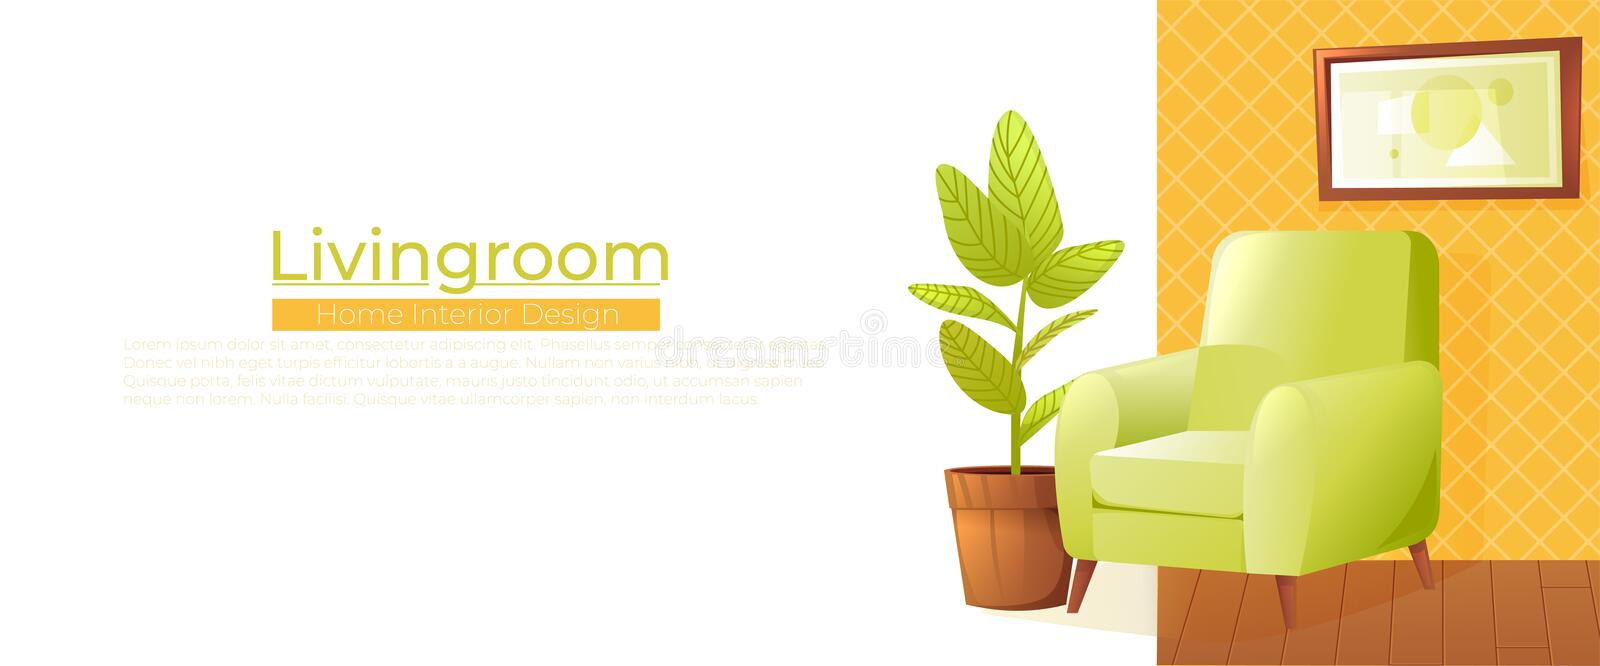 Living room home interior design banner. Comfortable armchair with a plant in a room with retro wallpaper. Vector royalty free illustration